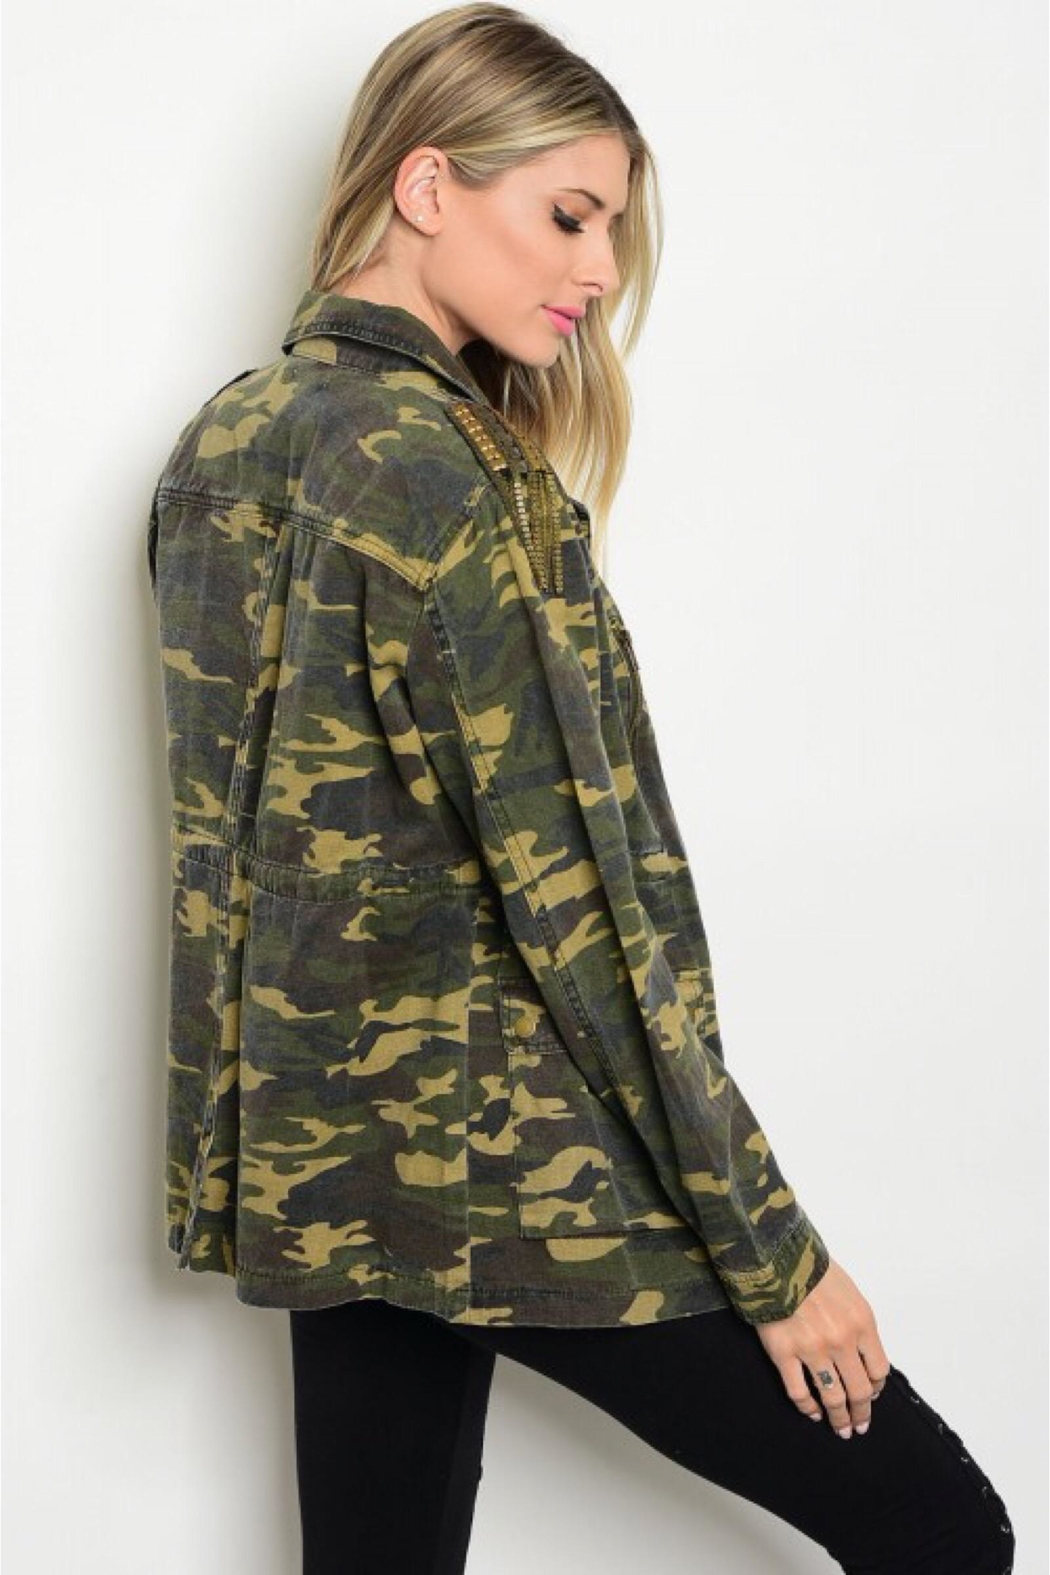 People Outfitter Studded Camouflage Jacket - Main Image